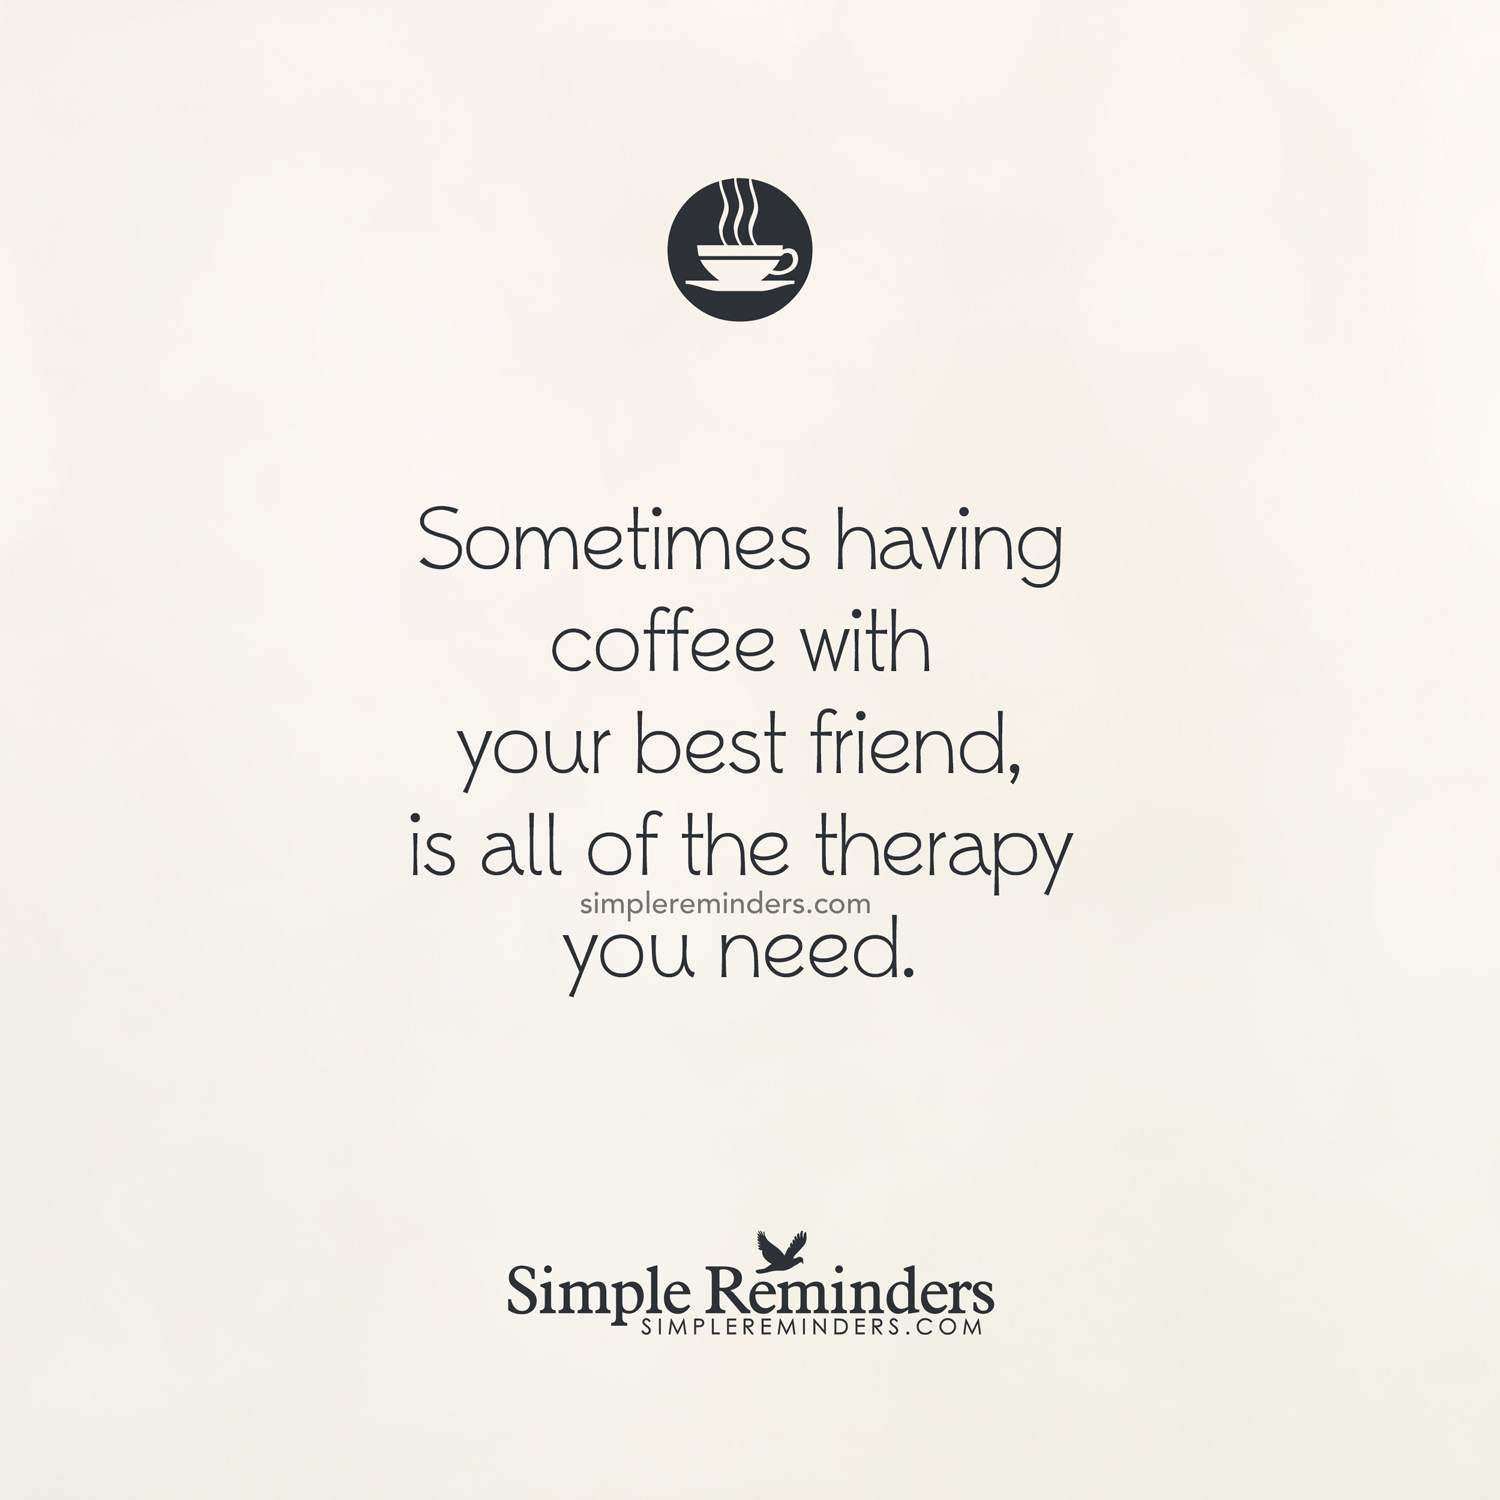 Quotes About Coffee And Friendship Quotes About Having Coffee With Friends 25 Quotes